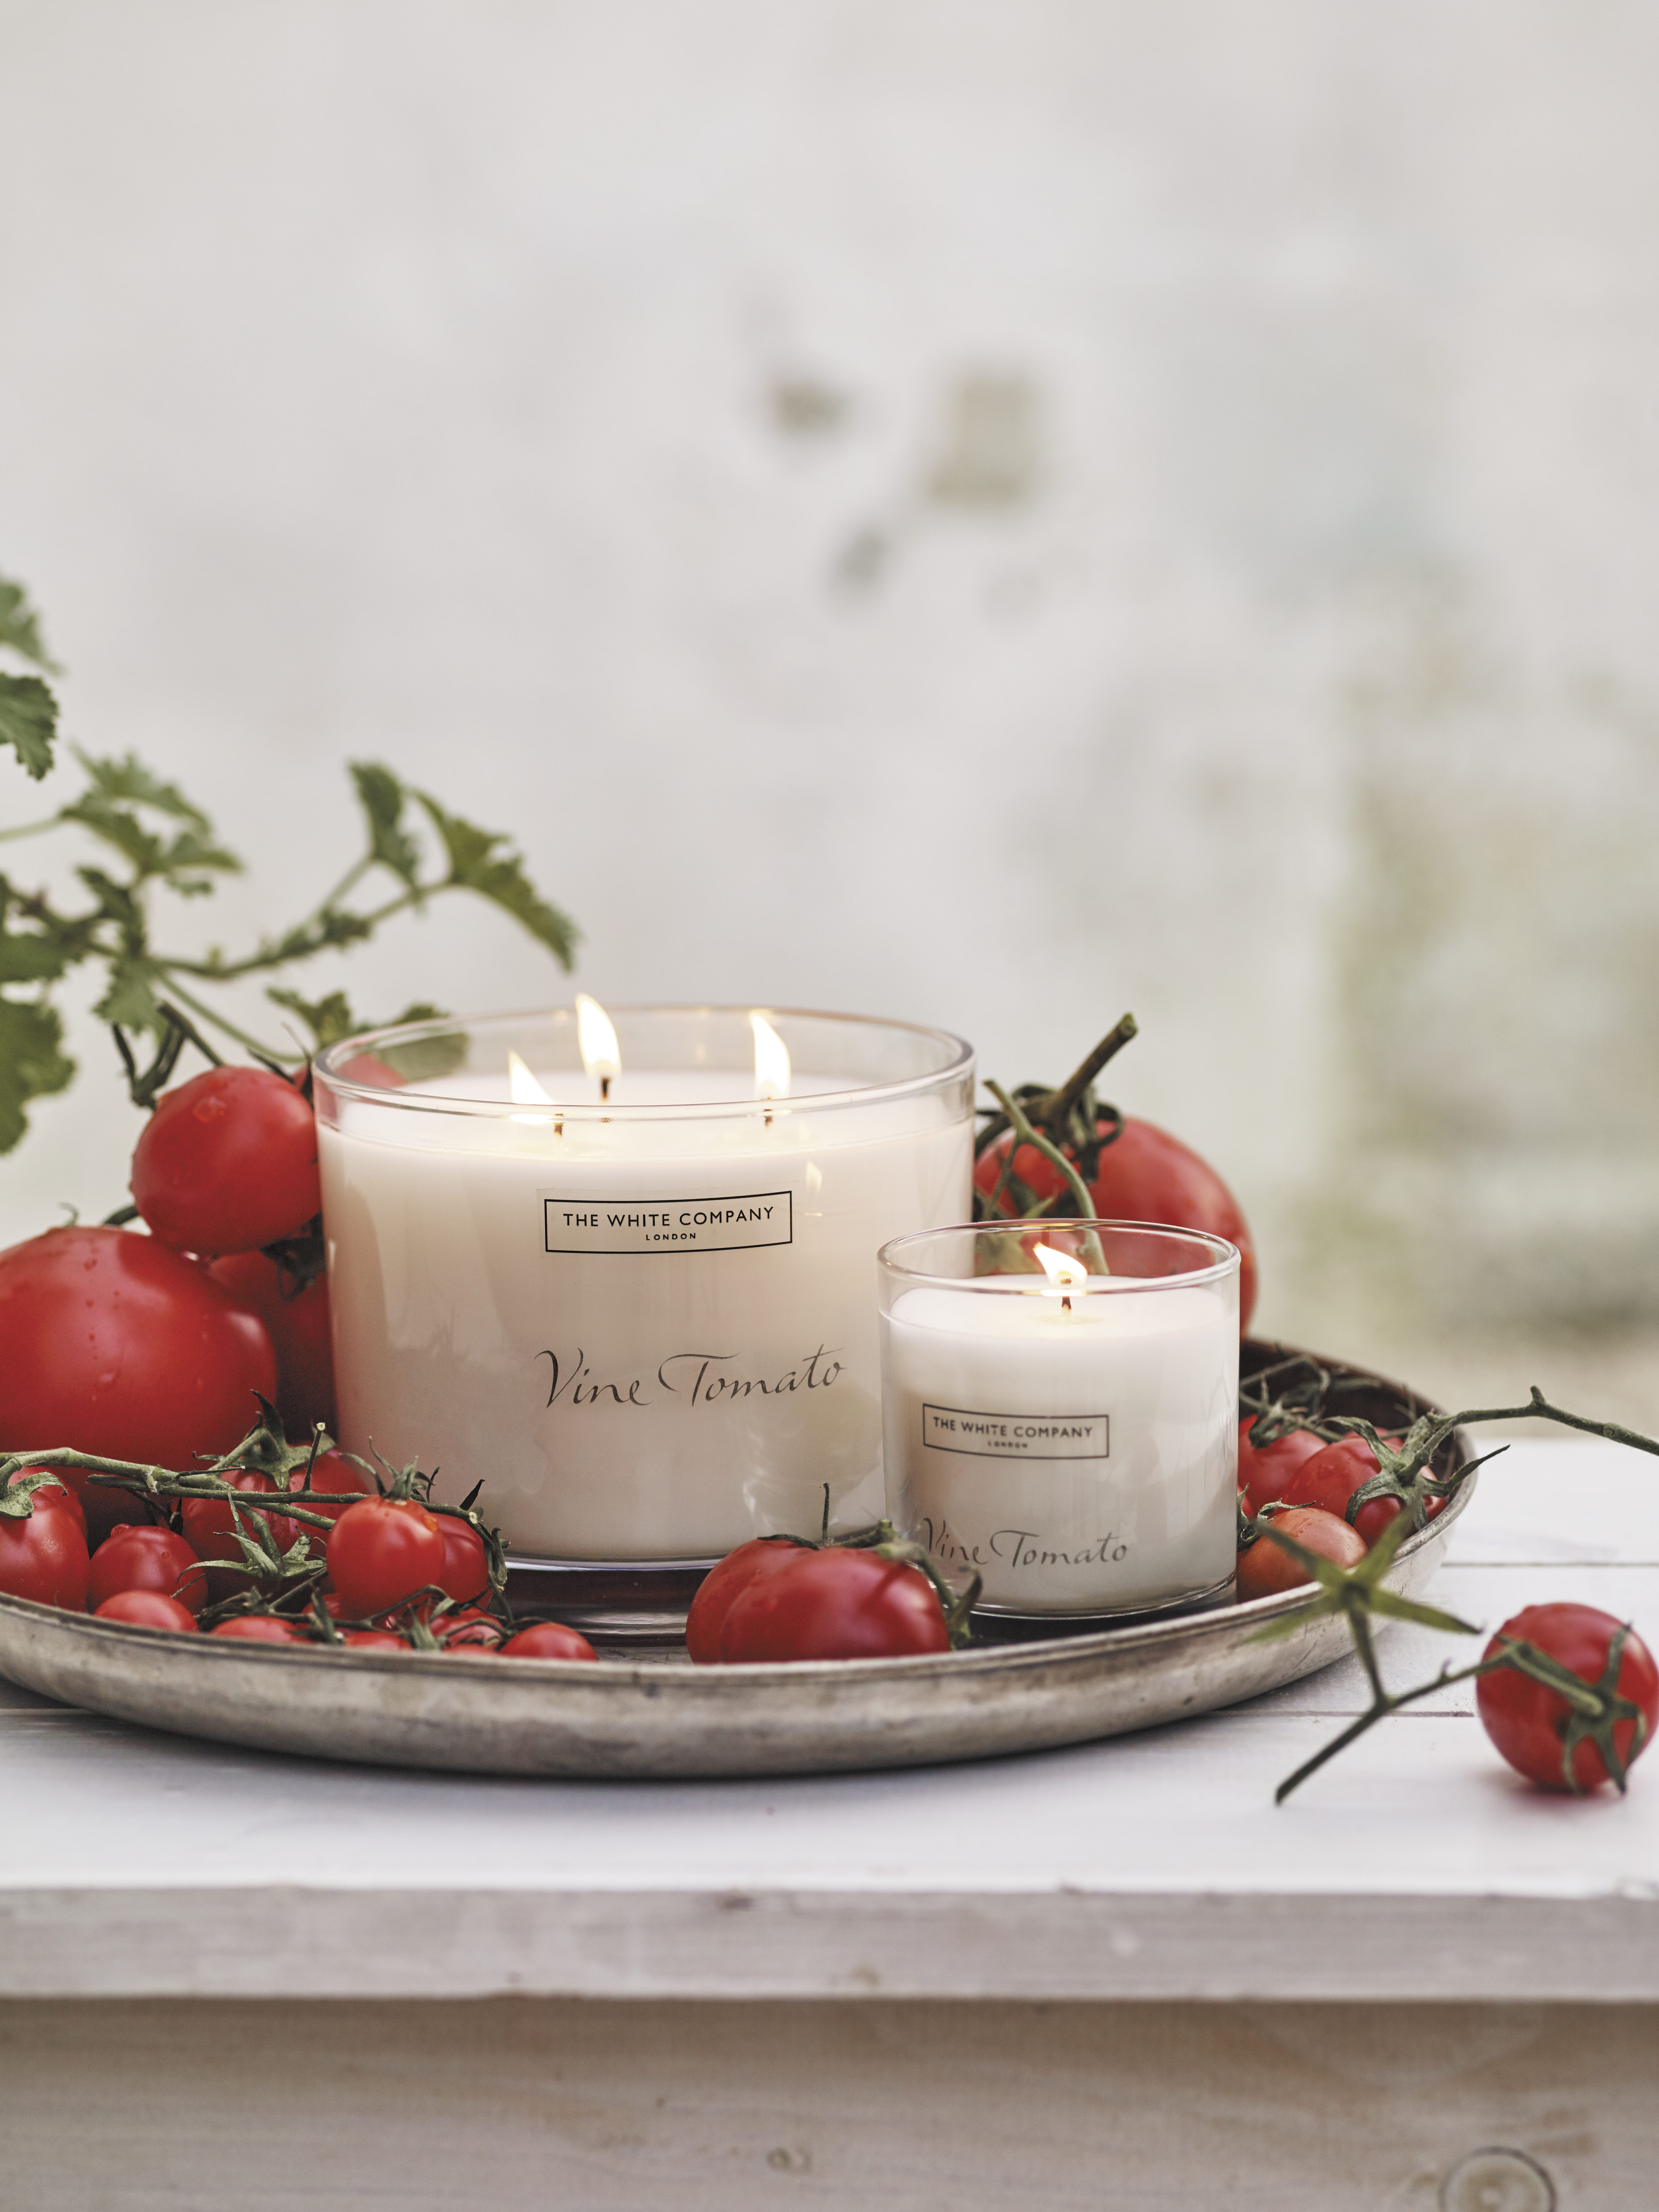 The White Company has opened a HUGE flagship store on